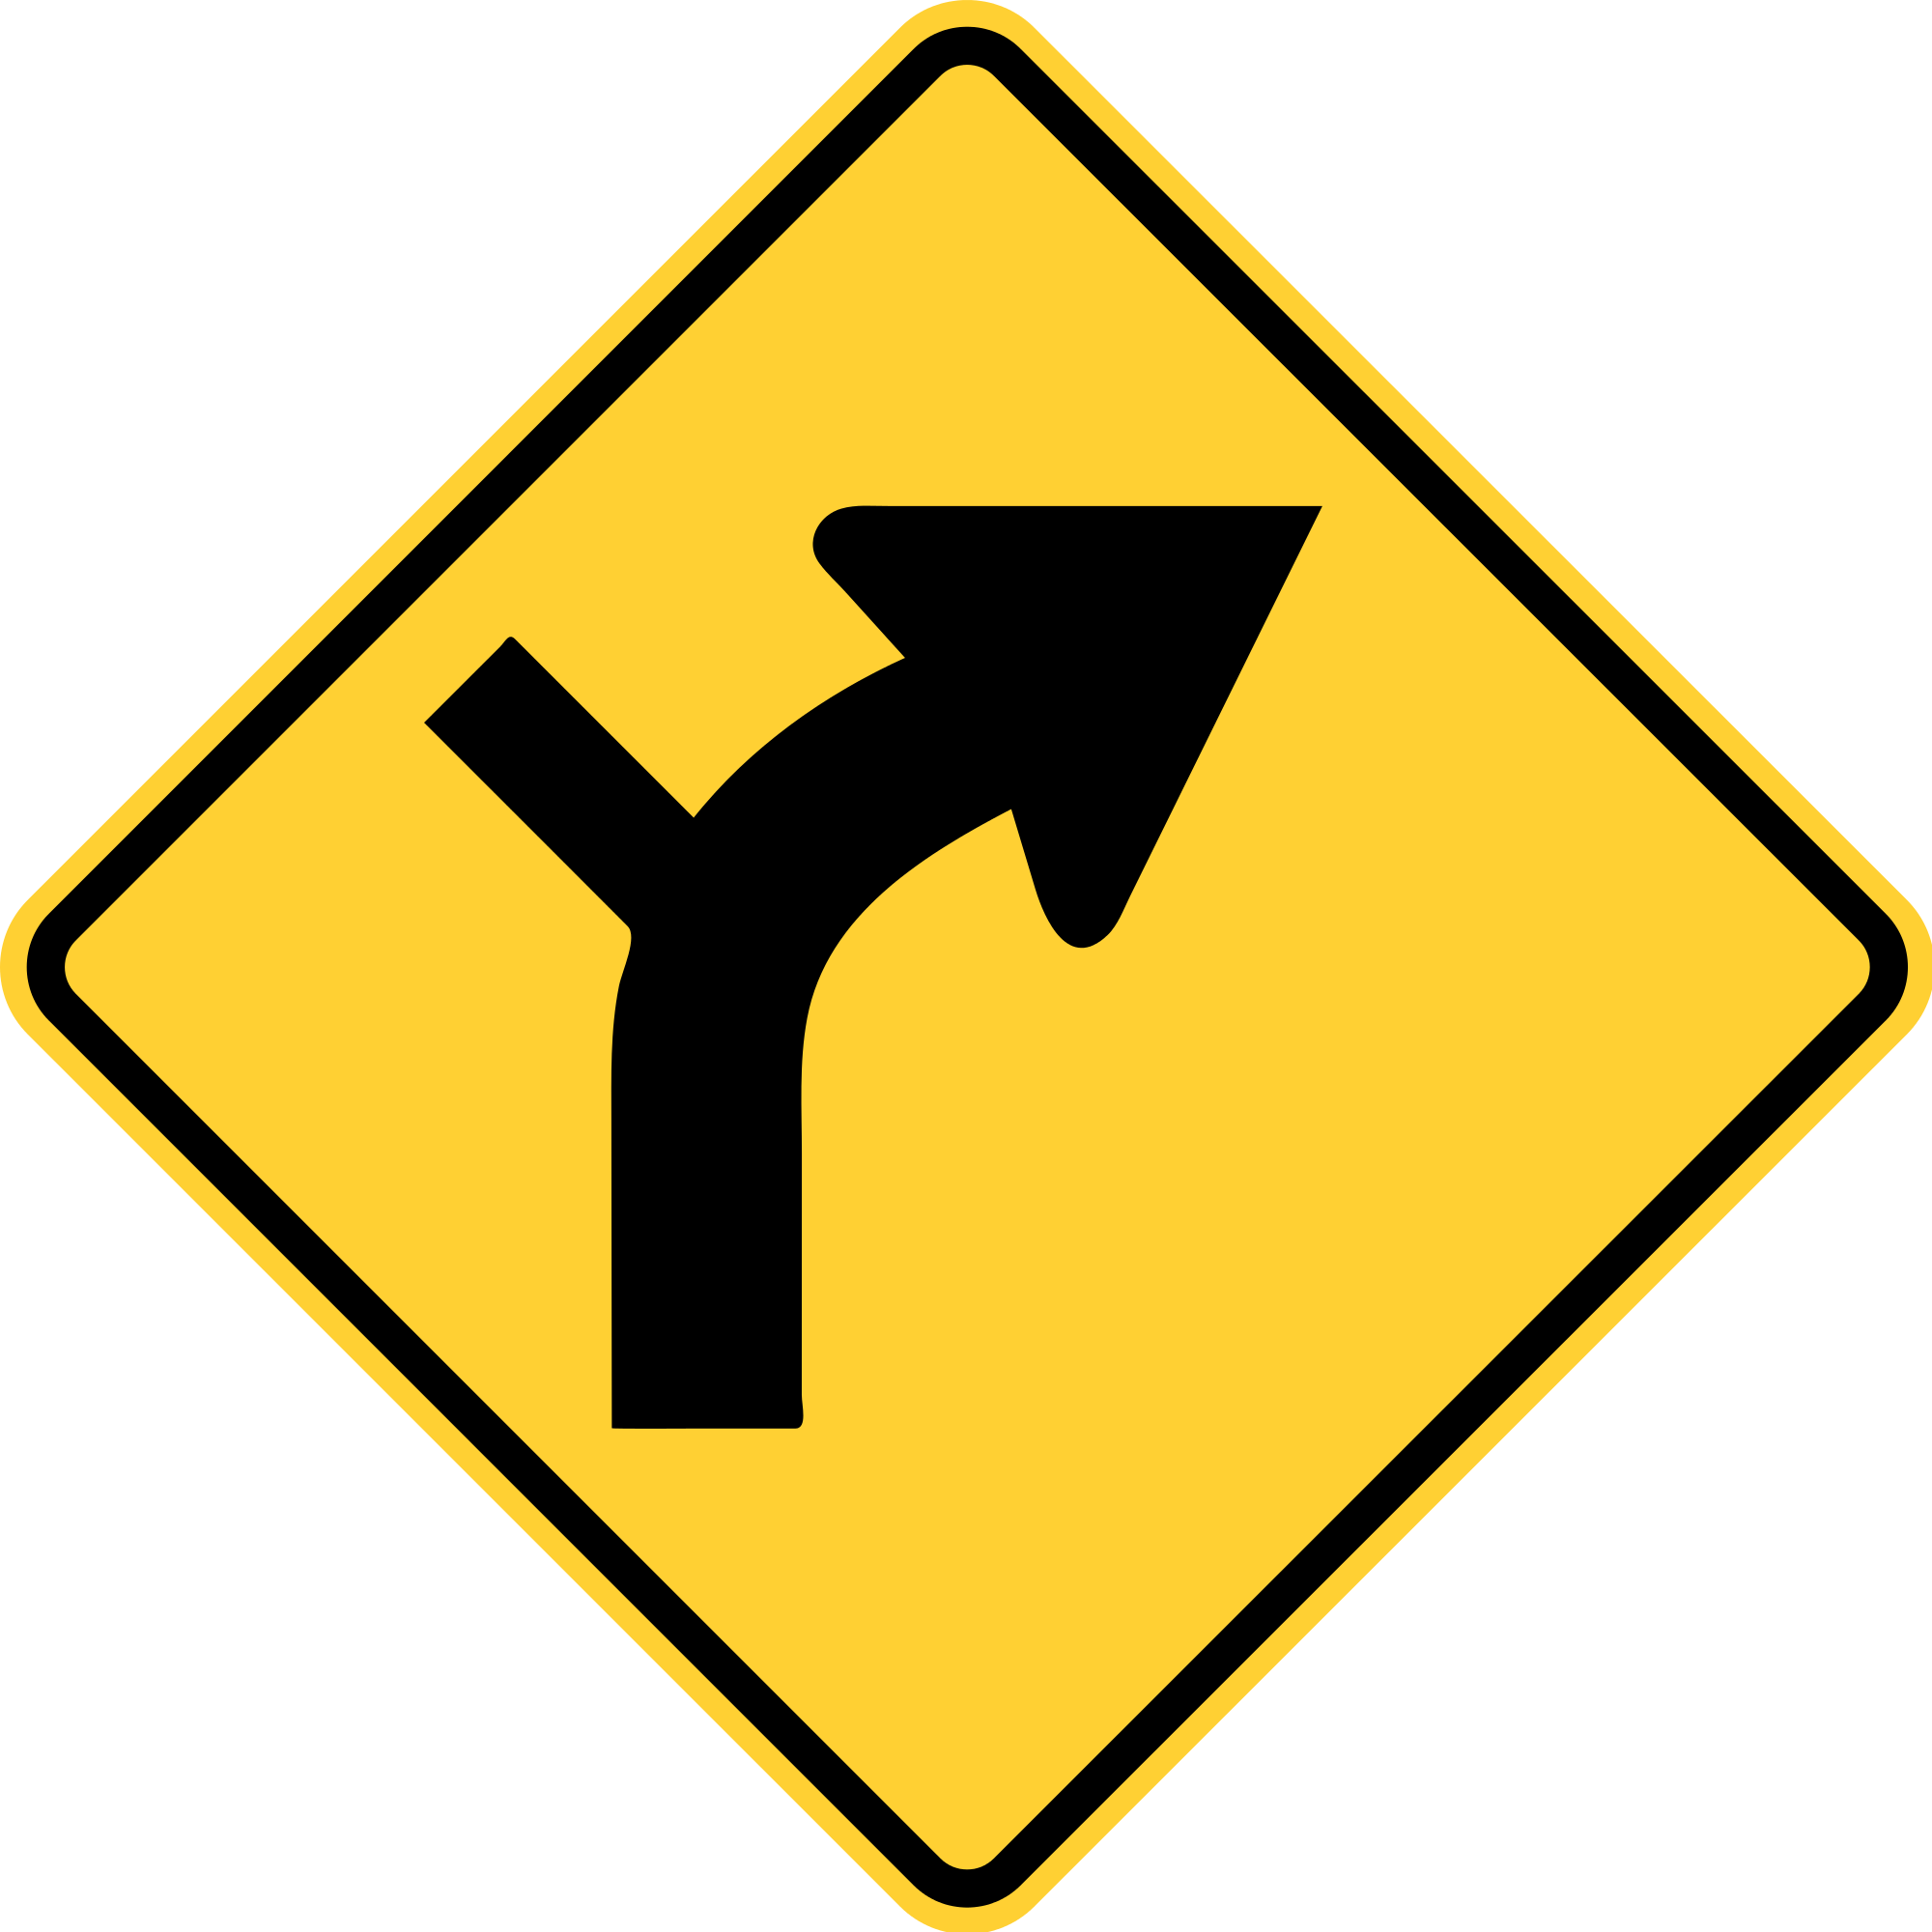 W1-10R Horizontal Alignment Warning Sign